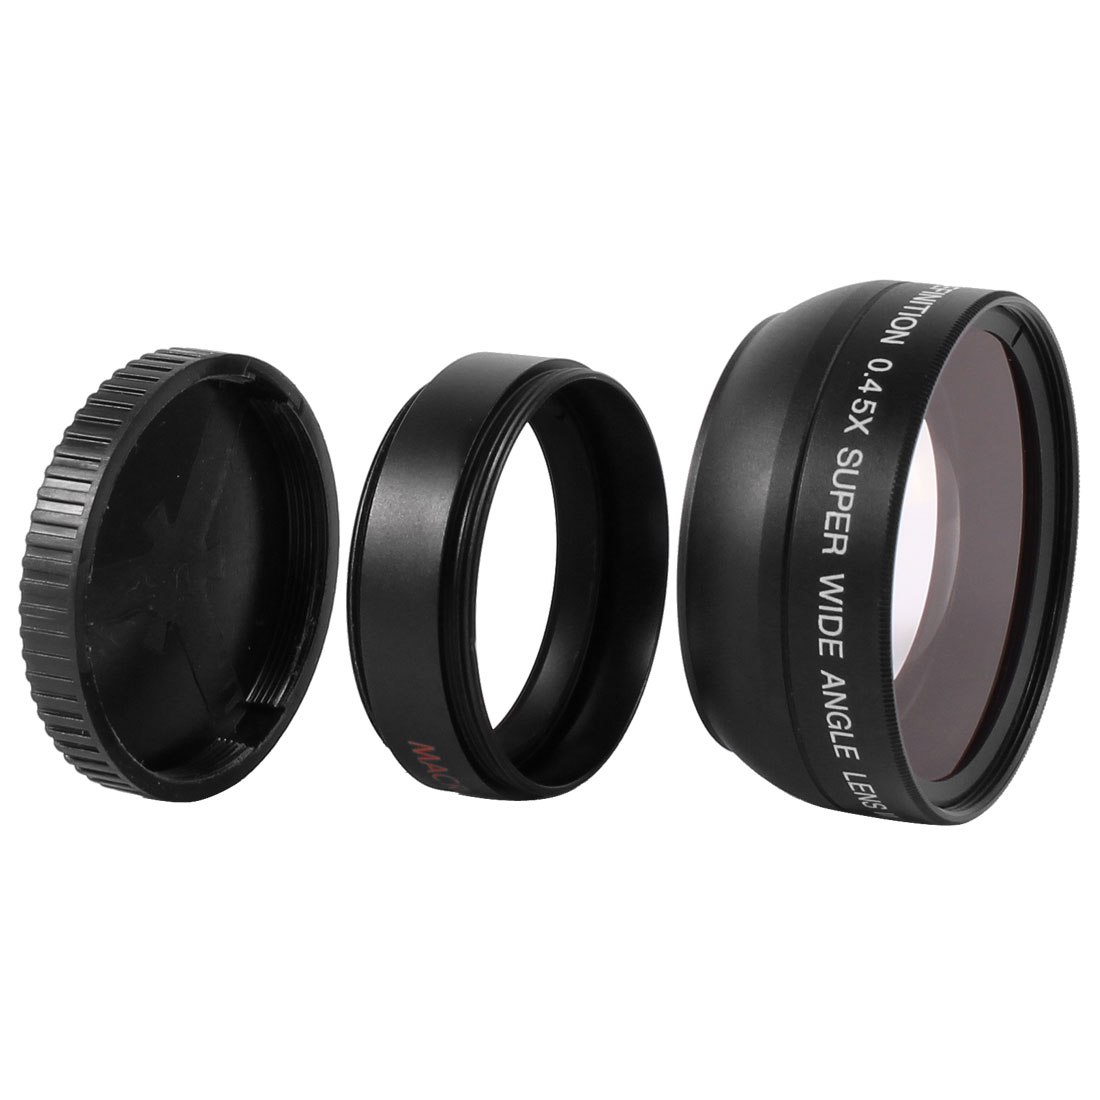 37mm 0.45X Magnifier Multi Coated Wide Angle Macro Lens Filter for DSLR Camera